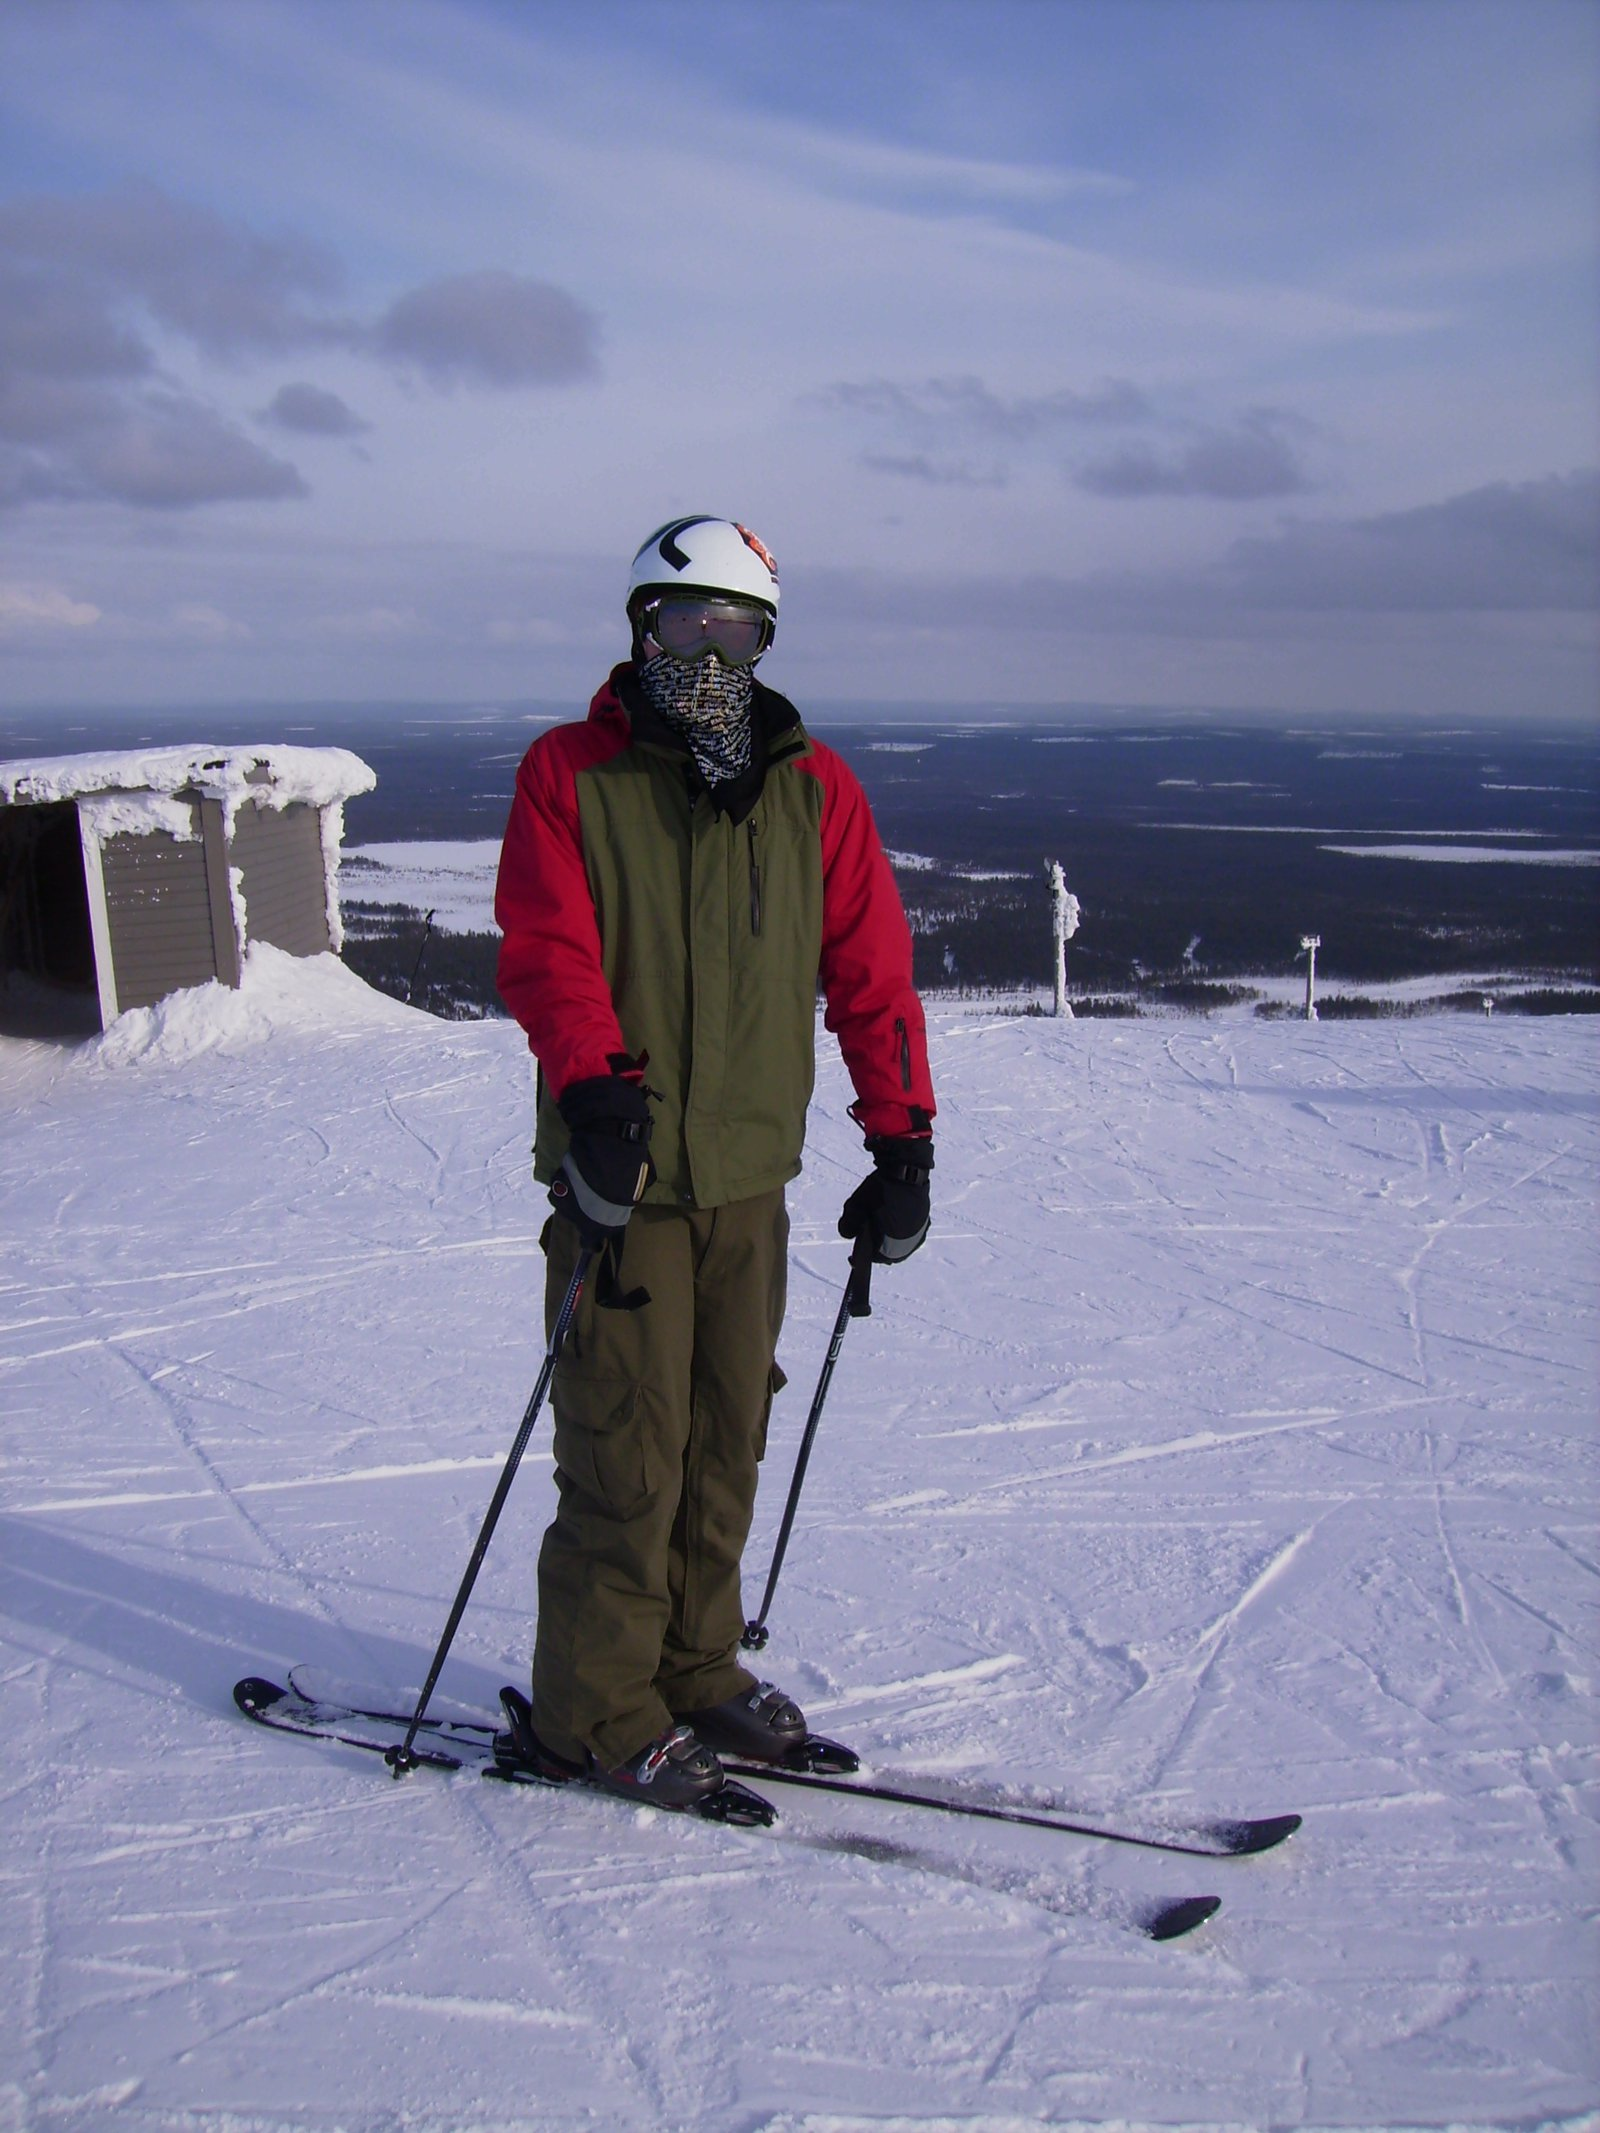 Mee in pyhä mountains